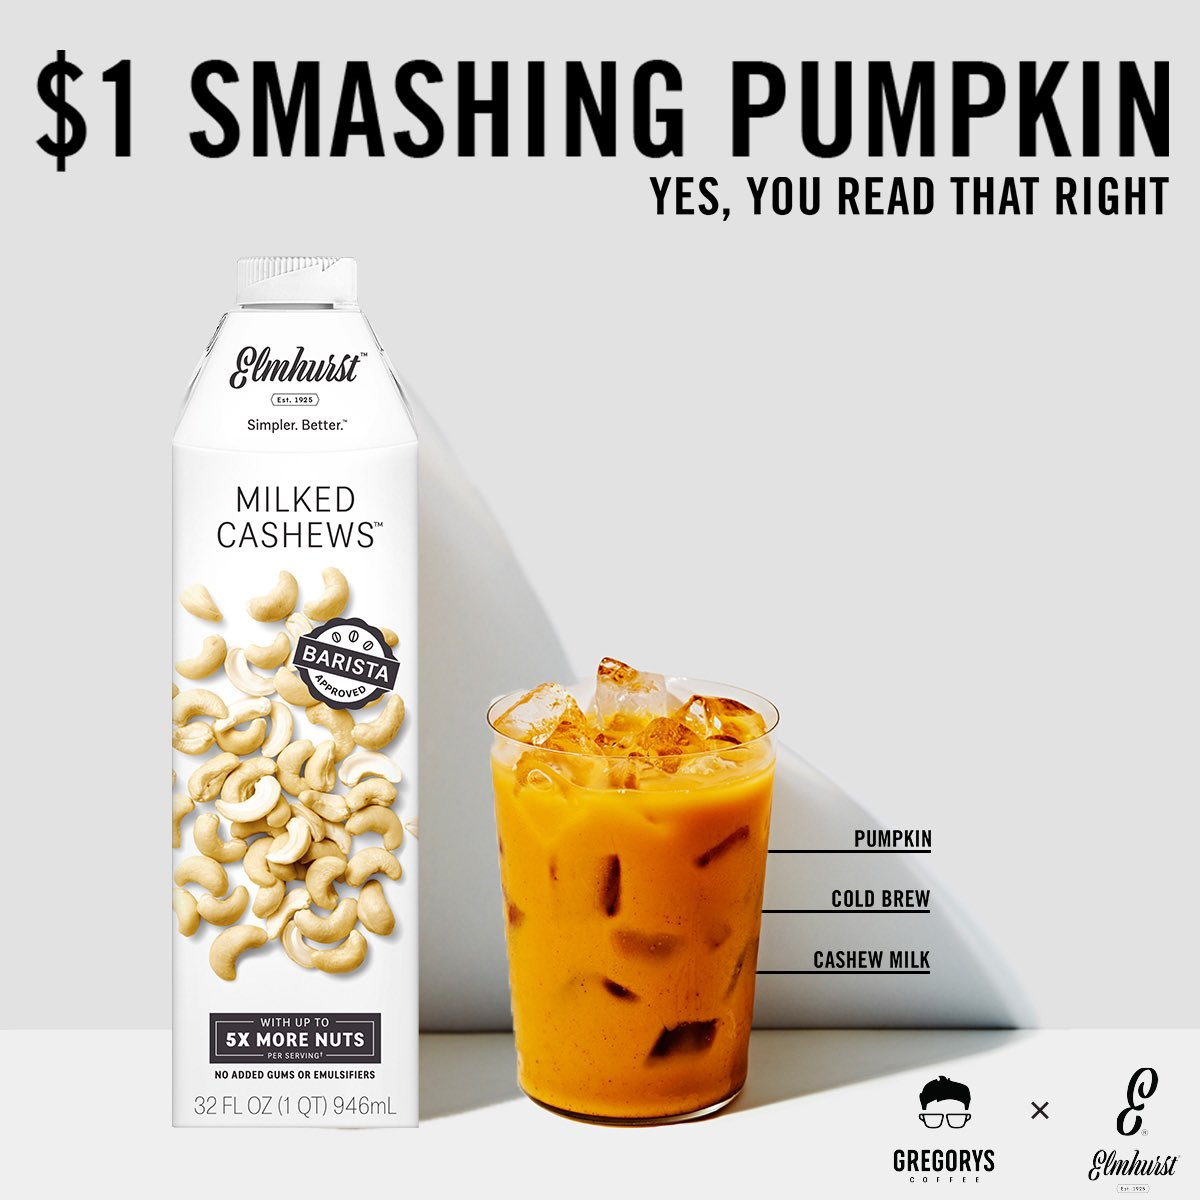 Enjoy any size Smashing Pumpkin tomorrow for just $1! We have launched @Elmhurst1925 Cashew Milk at all Gregorys locations and have teamed up to get you a little TGIF, Gregular style. Oh and a special playlist is hitting tomorrow as well.  See you tomorrow! https://t.co/qYEmbA8GB3